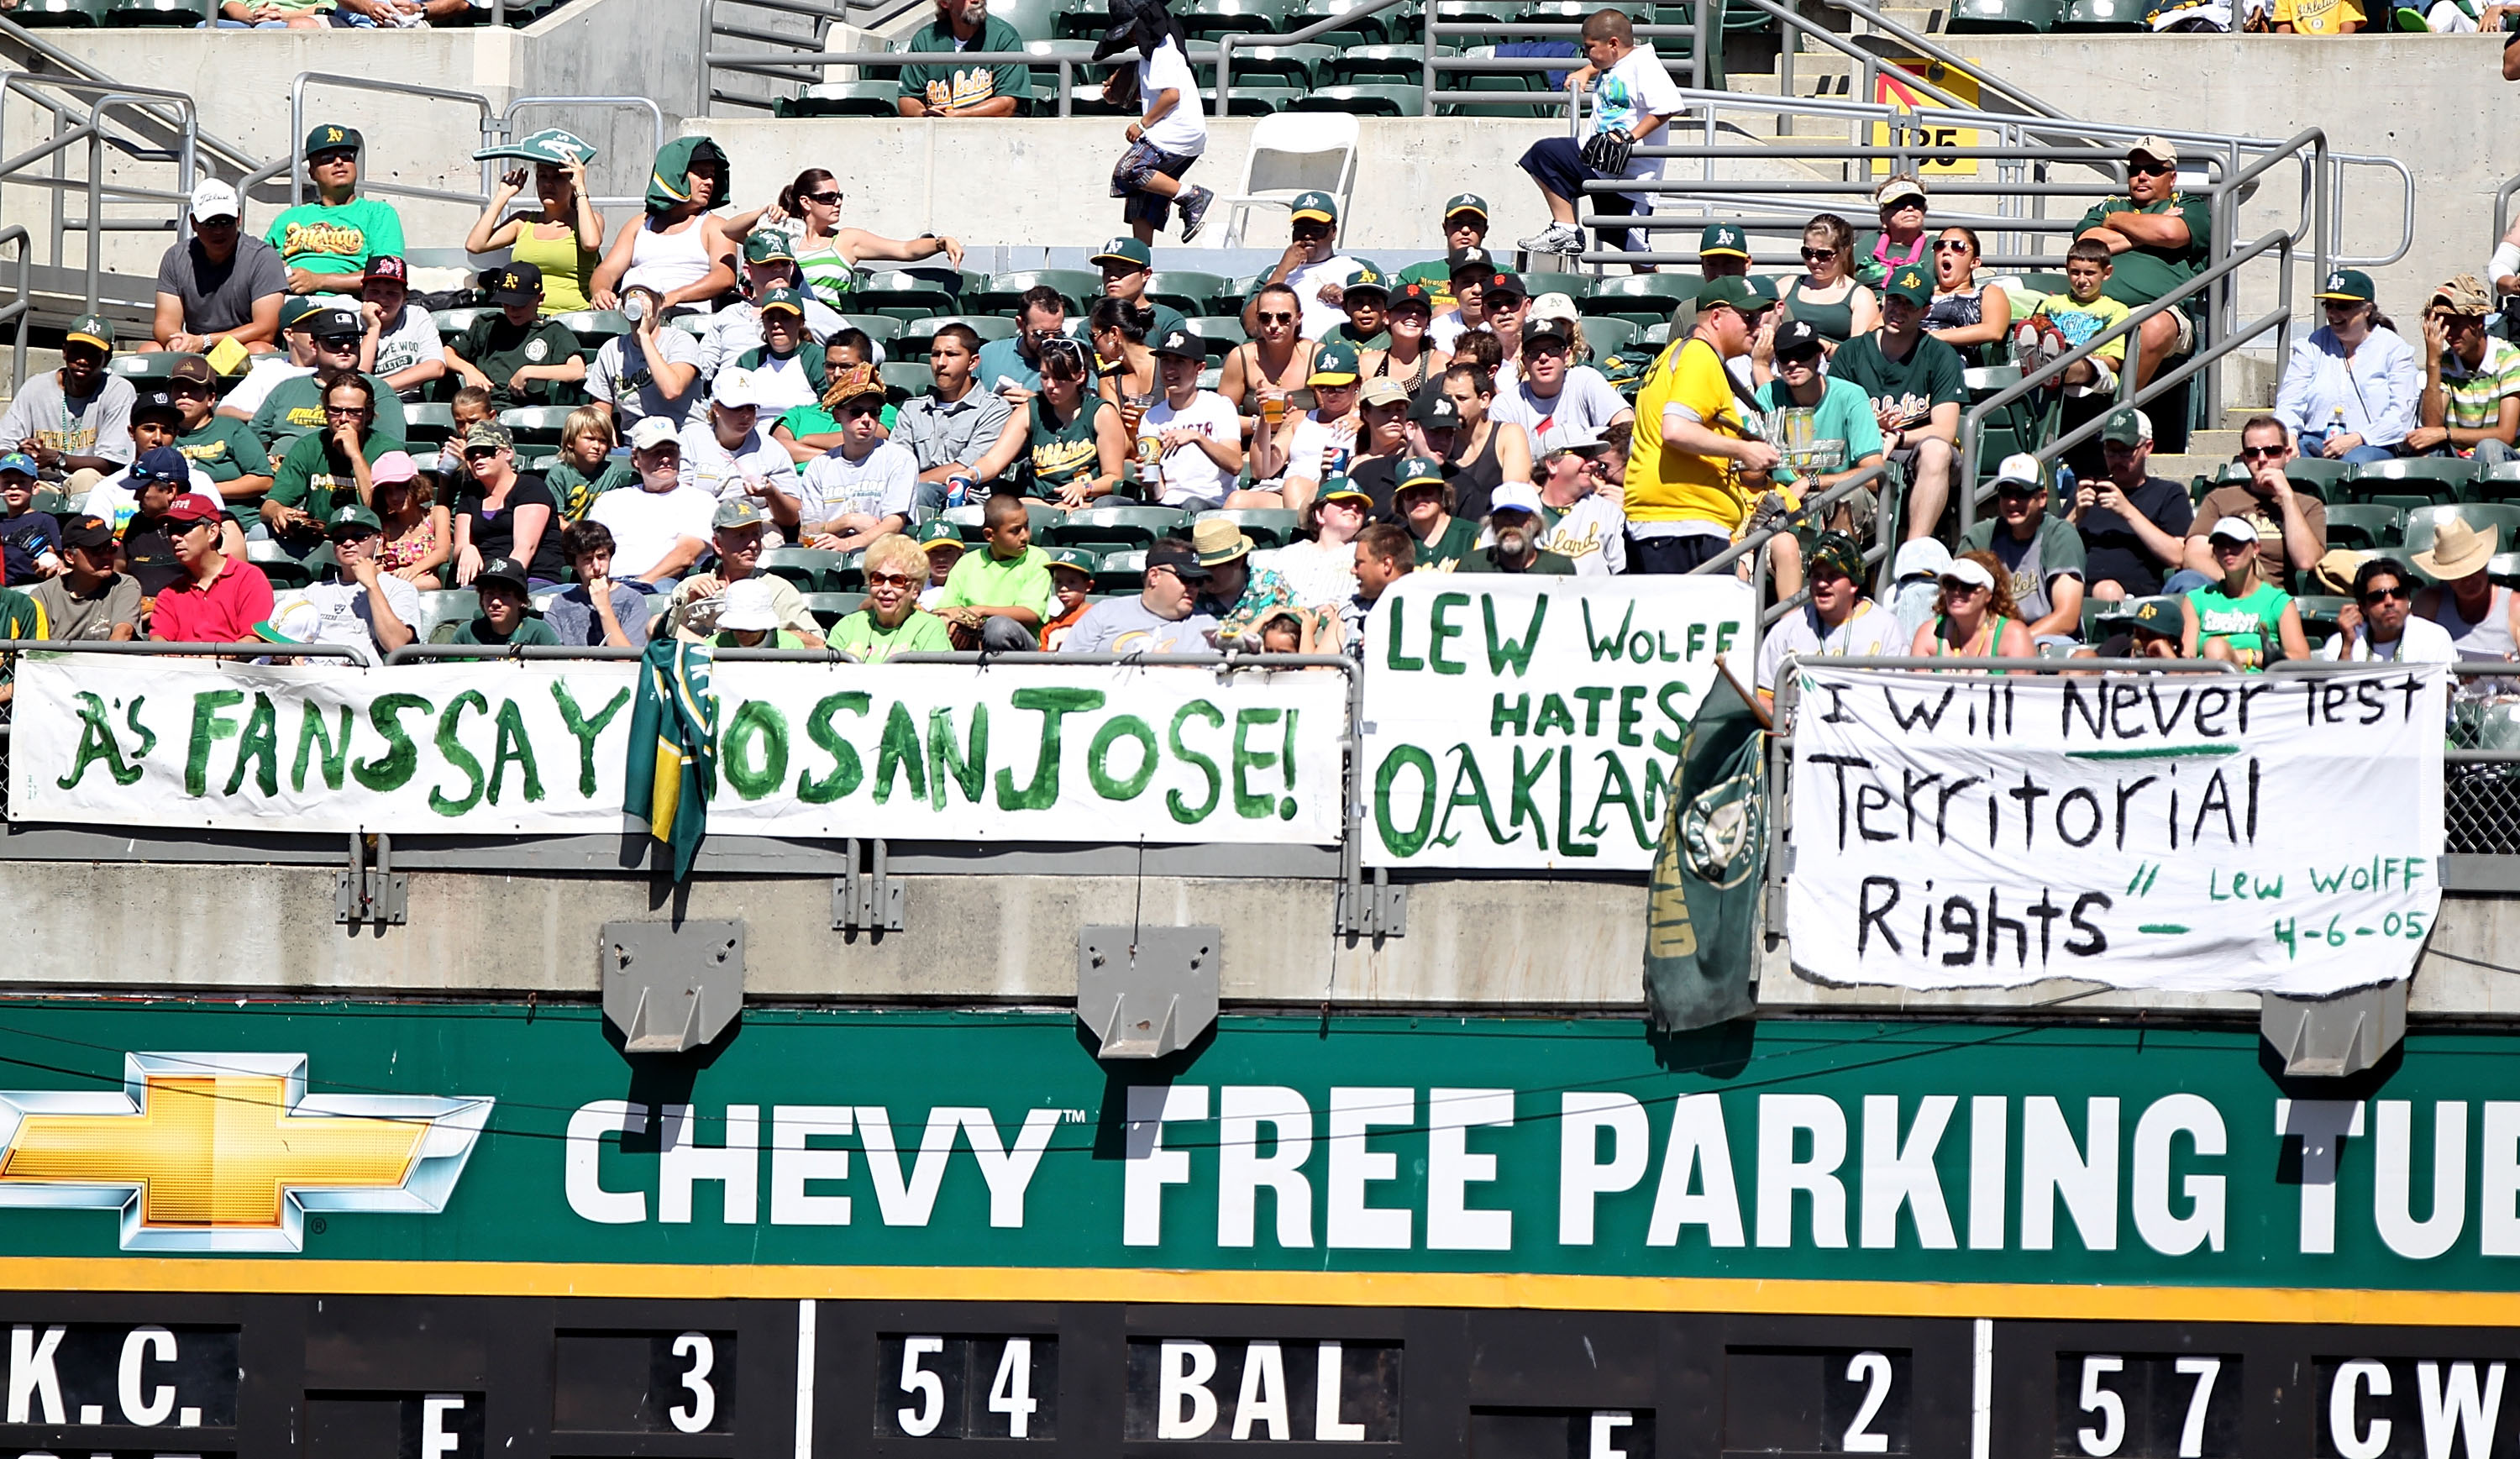 OAKLAND, CA - SEPTEMBER 26:  Fans of the Oakland Athletics look on against the Texas Rangers during a Major League Baseball game at the Oakland-Alameda County Coliseum on September 26, 2010 in Oakland, California. (Photo by Jed Jacobsohn/Getty Images)